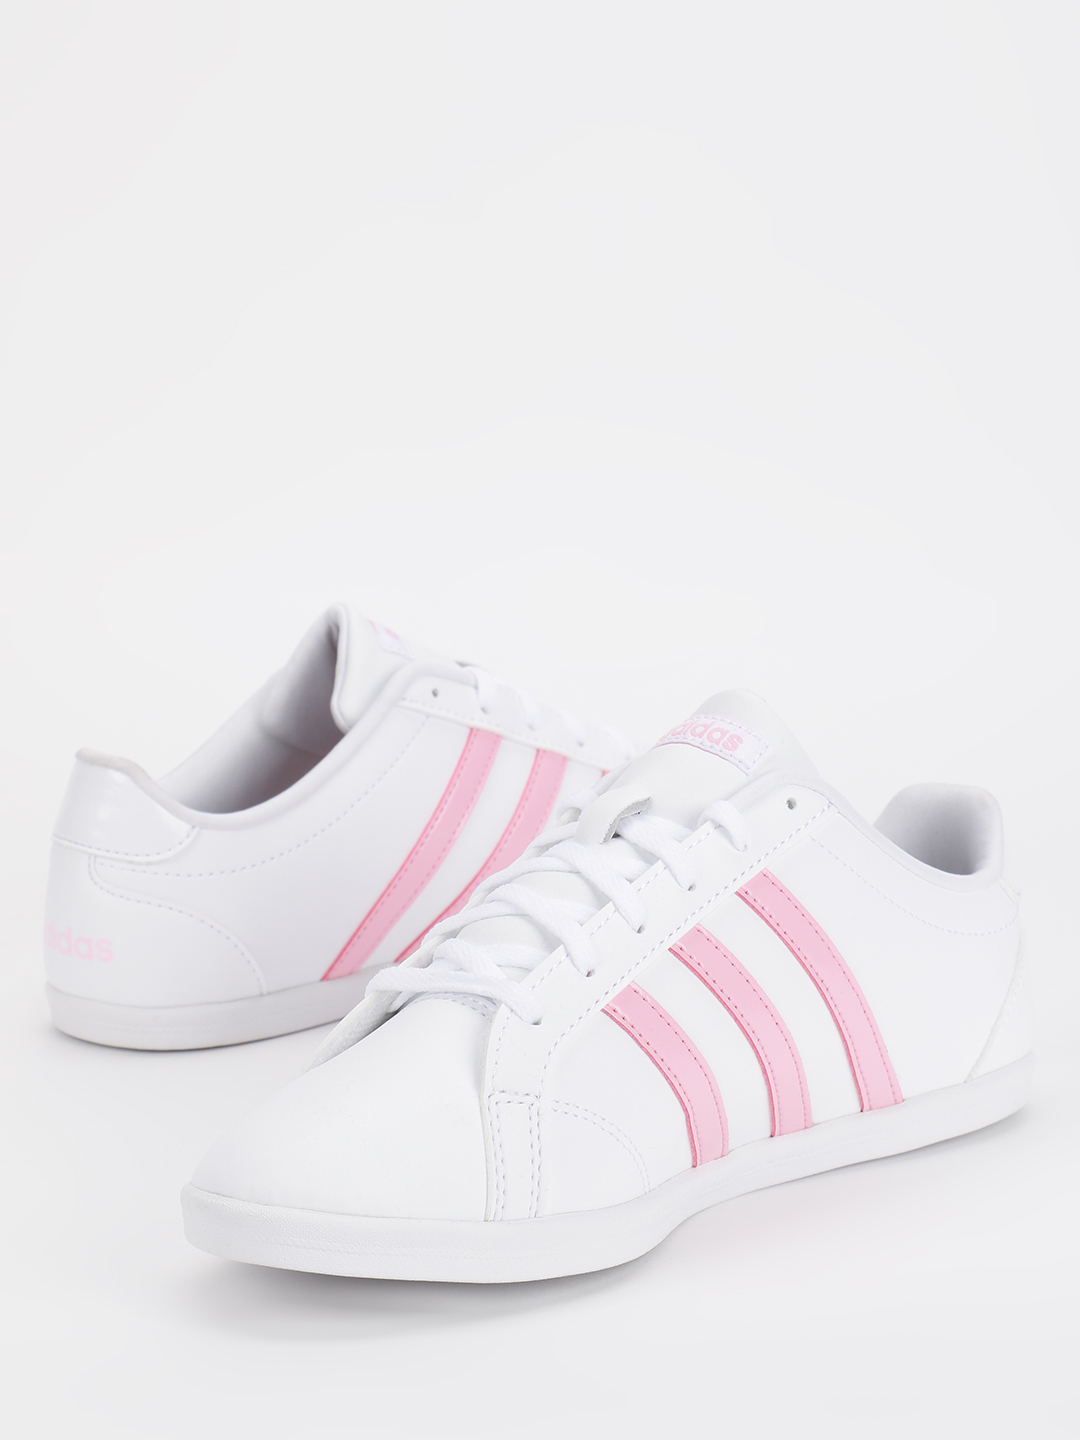 Adidas White Coneo Qt Shoes 1